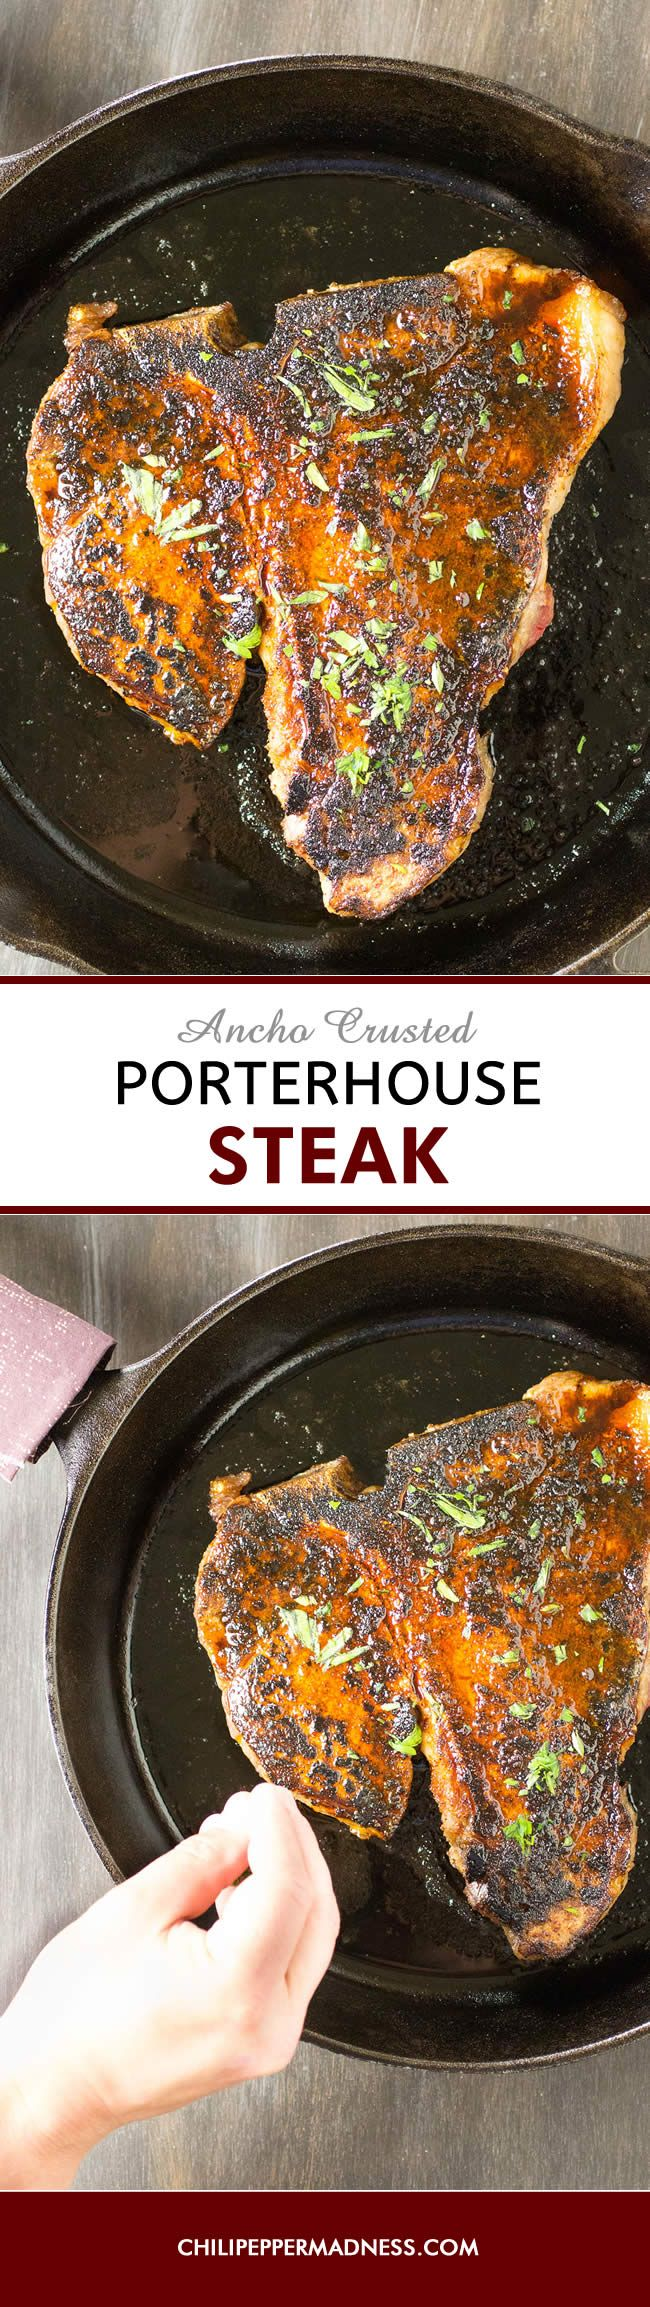 Ancho Crusted Porterhouse Steak - Serve yourself up a gorgeous porterhouse steak that has been rubbed generously with ancho powder, pan seared to perfection and bathed in melted butter. Here is the recipe.